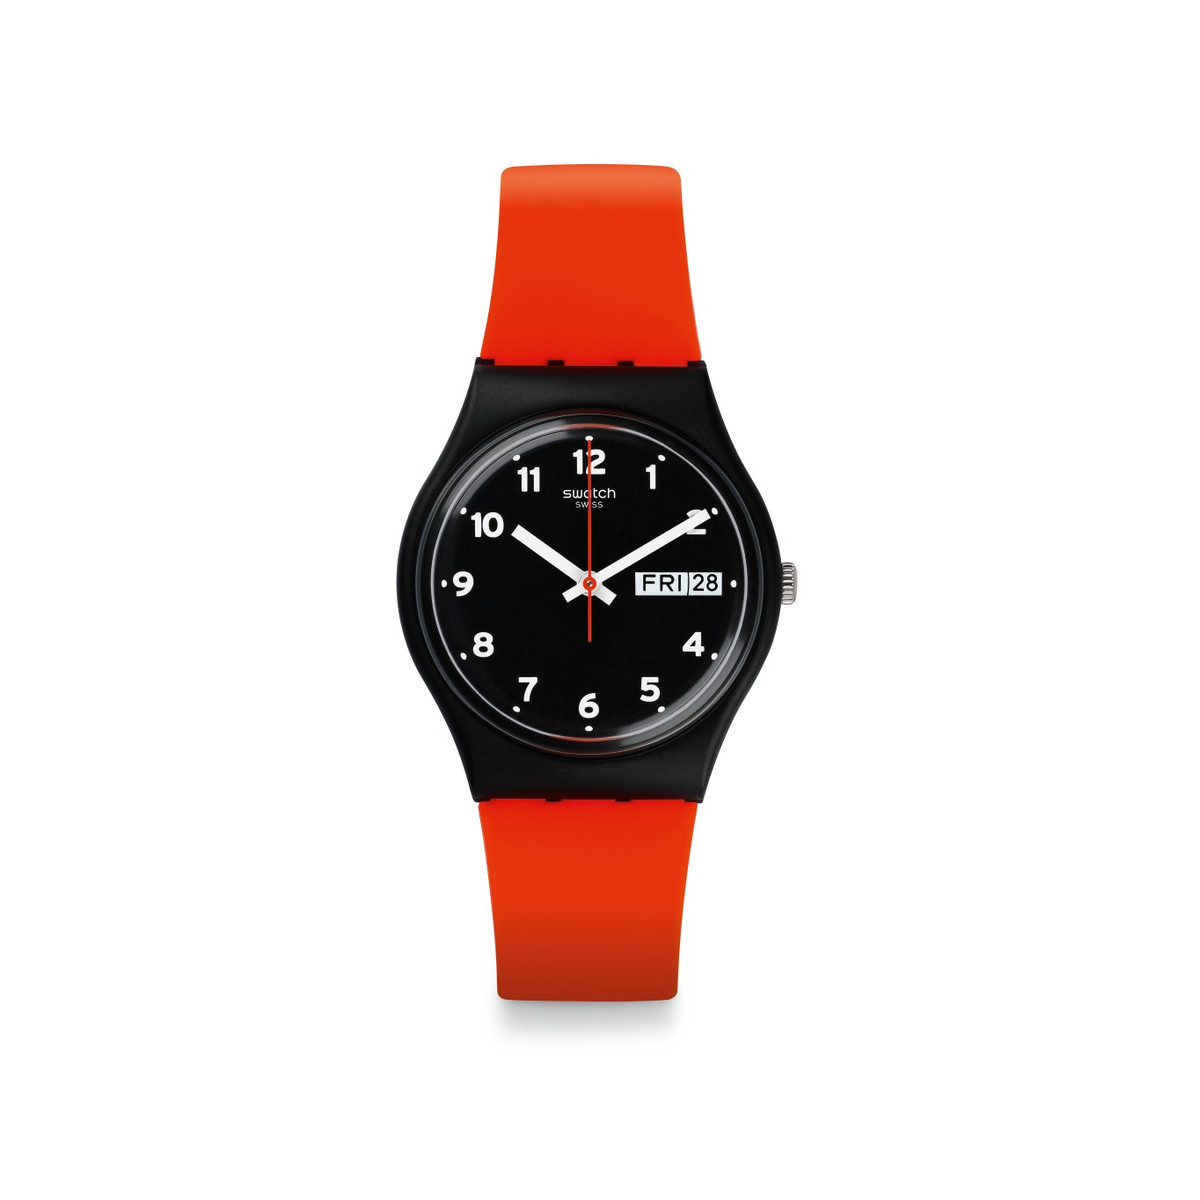 Montre Swatch mixte caoutchouc orange - vue 1